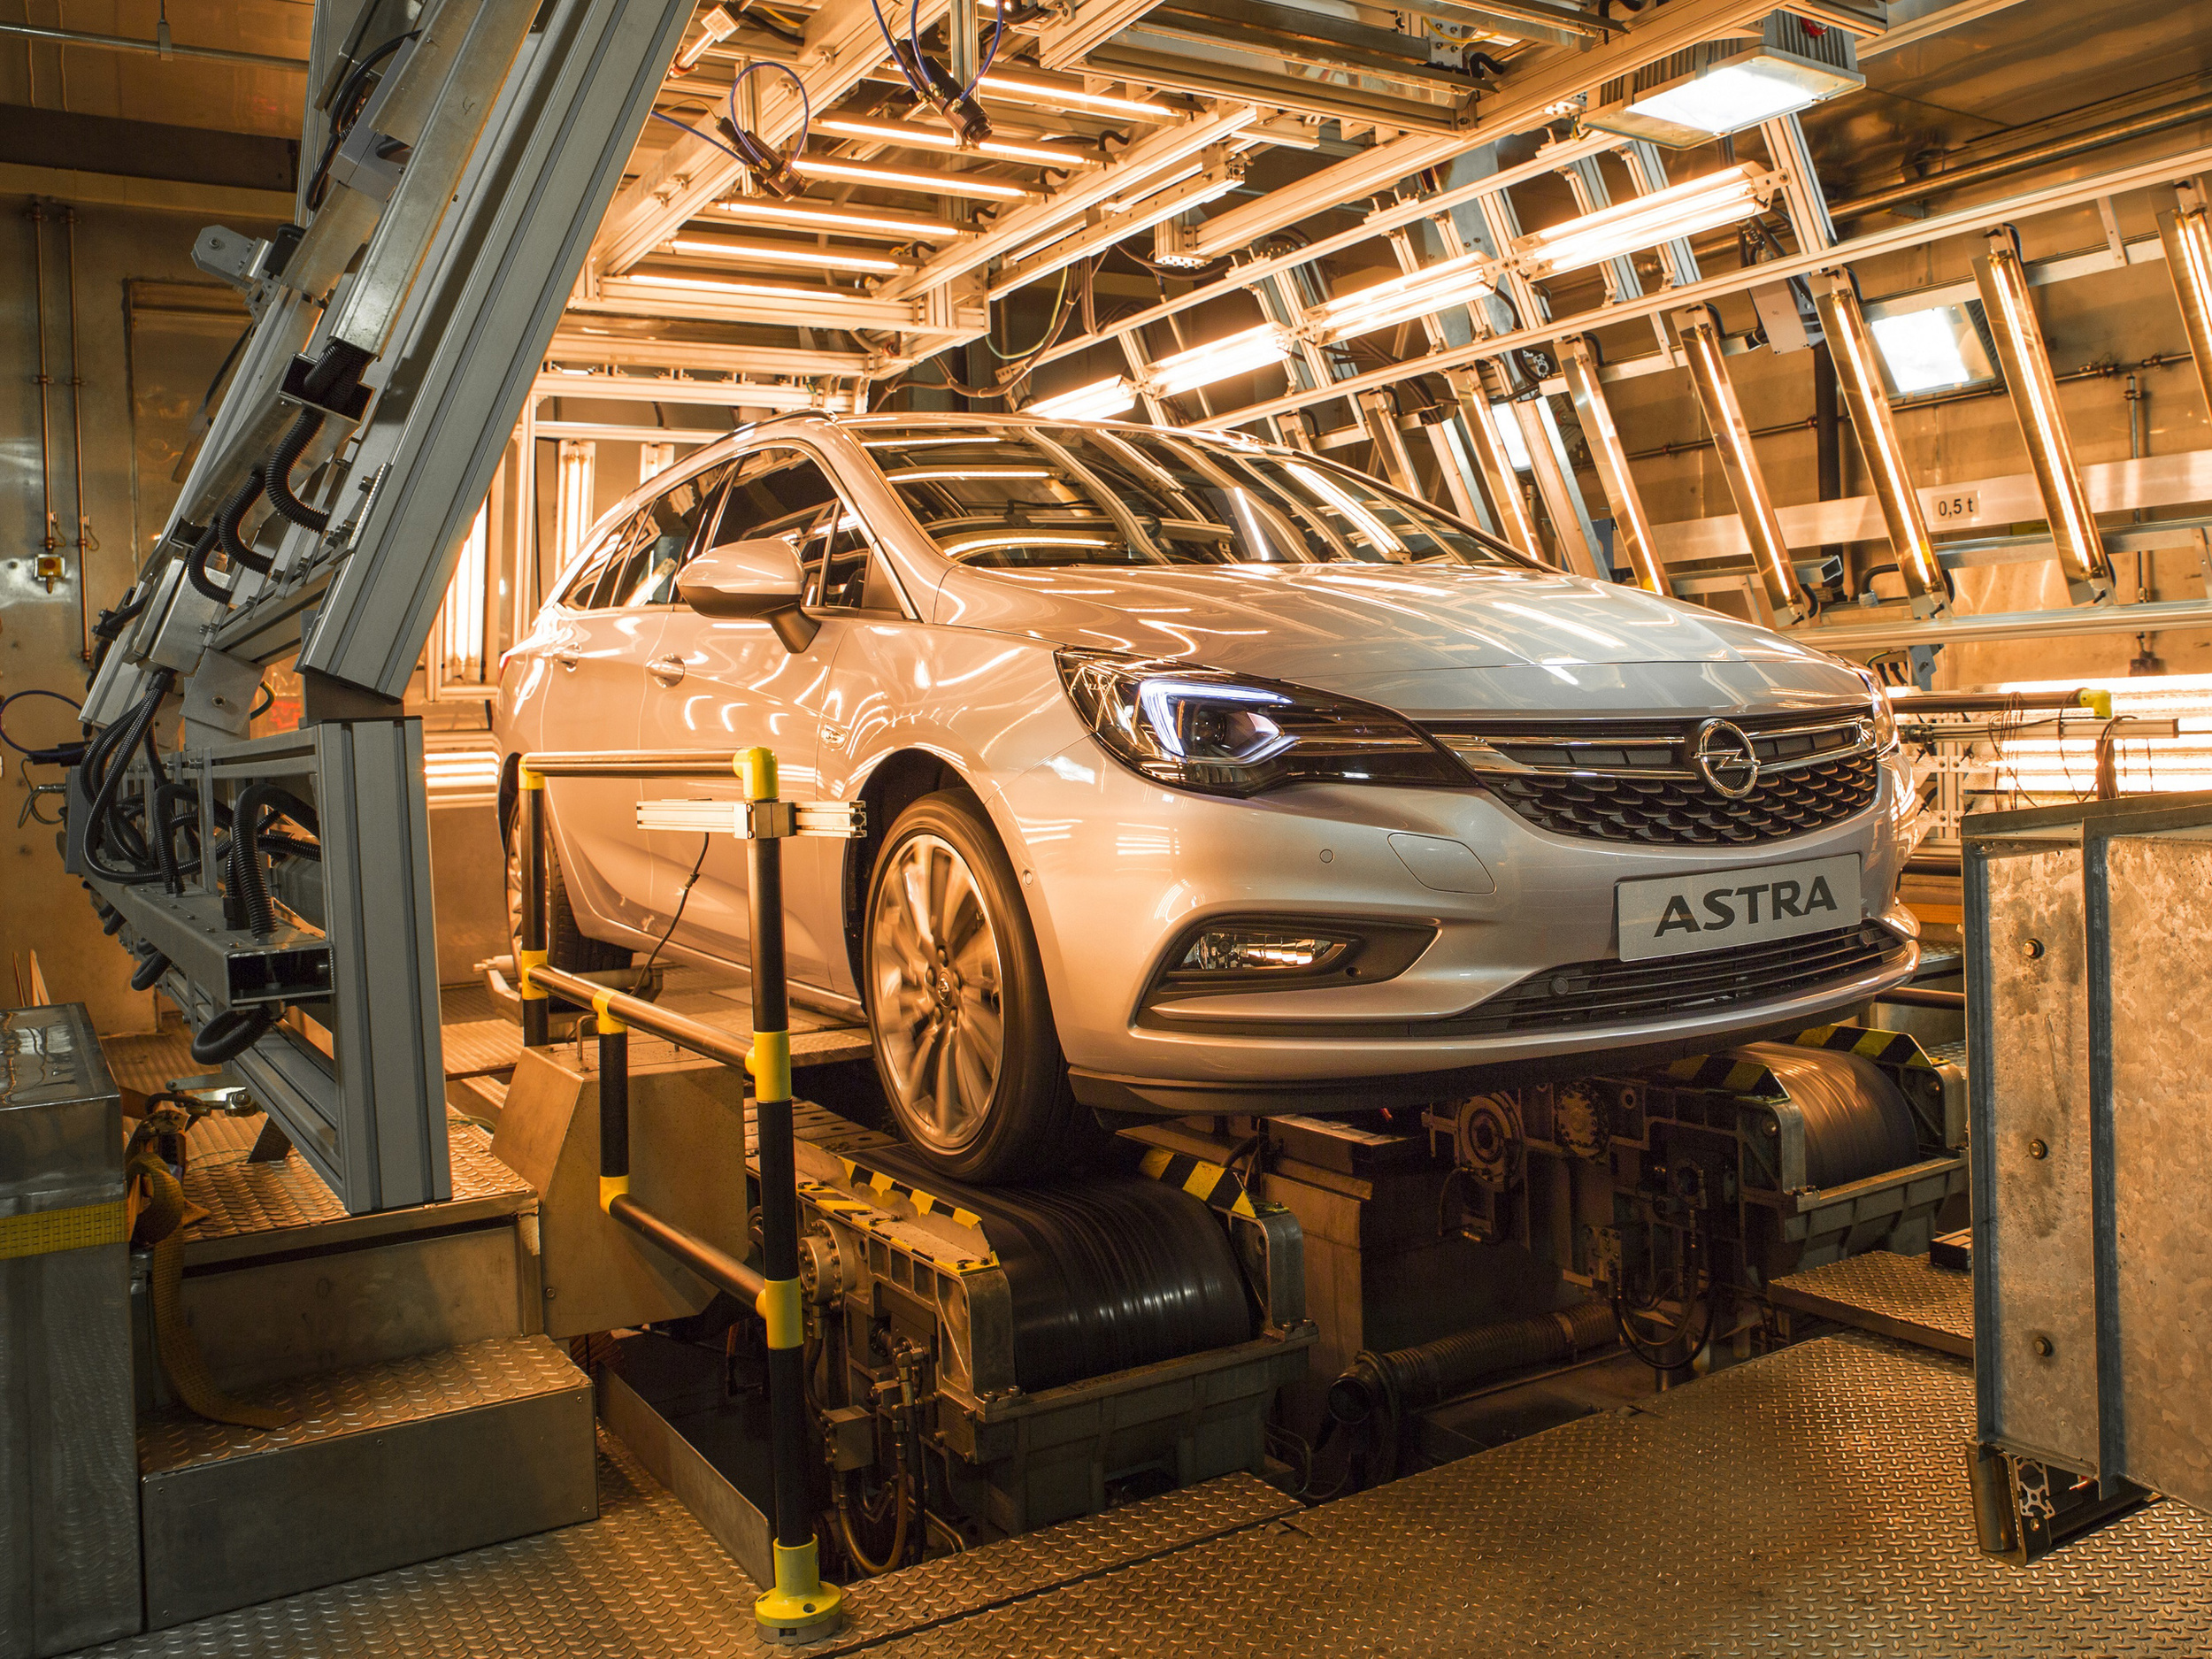 Opel-Astra-Sports-Tourer-Climatic-Test-Chamber-299047.jpg